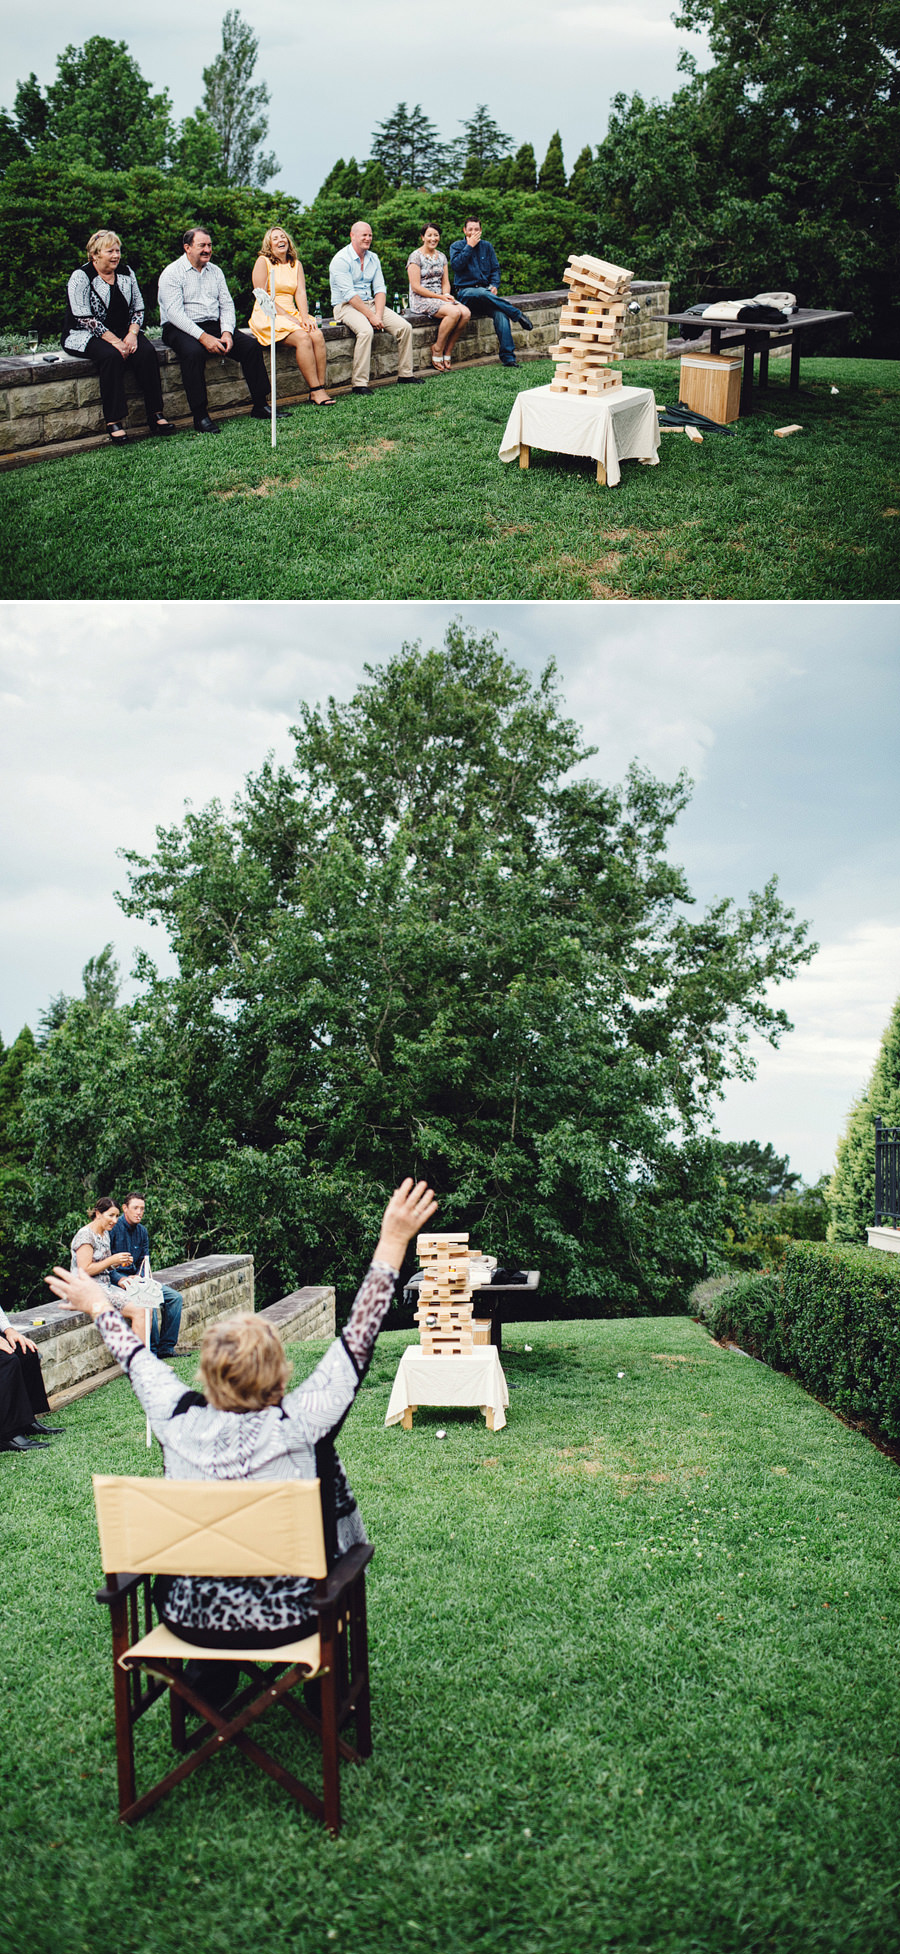 Wentworth Falls Wedding Photography: Lawn Games